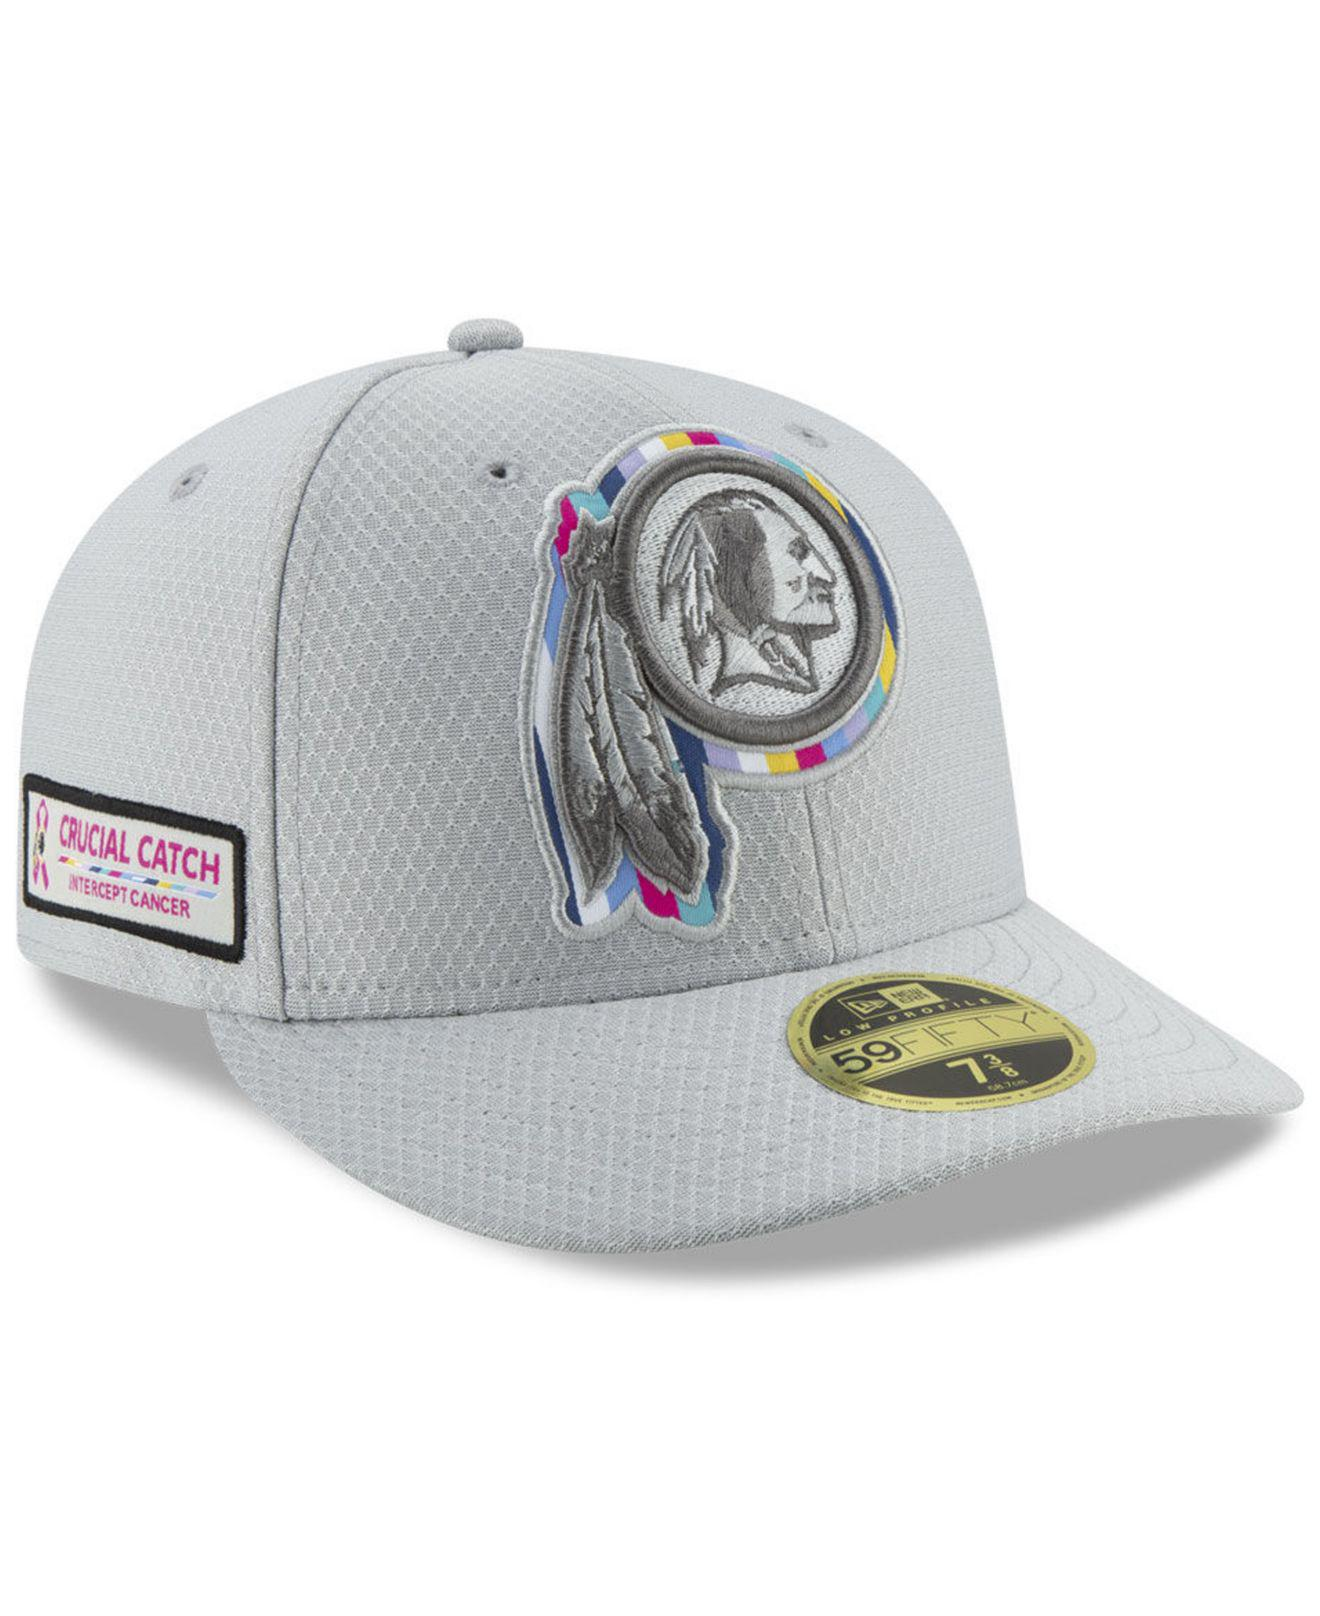 new product 078c0 06941 KTZ Washington Redskins Crucial Catch Low Profile 59fifty Fitted Cap ...